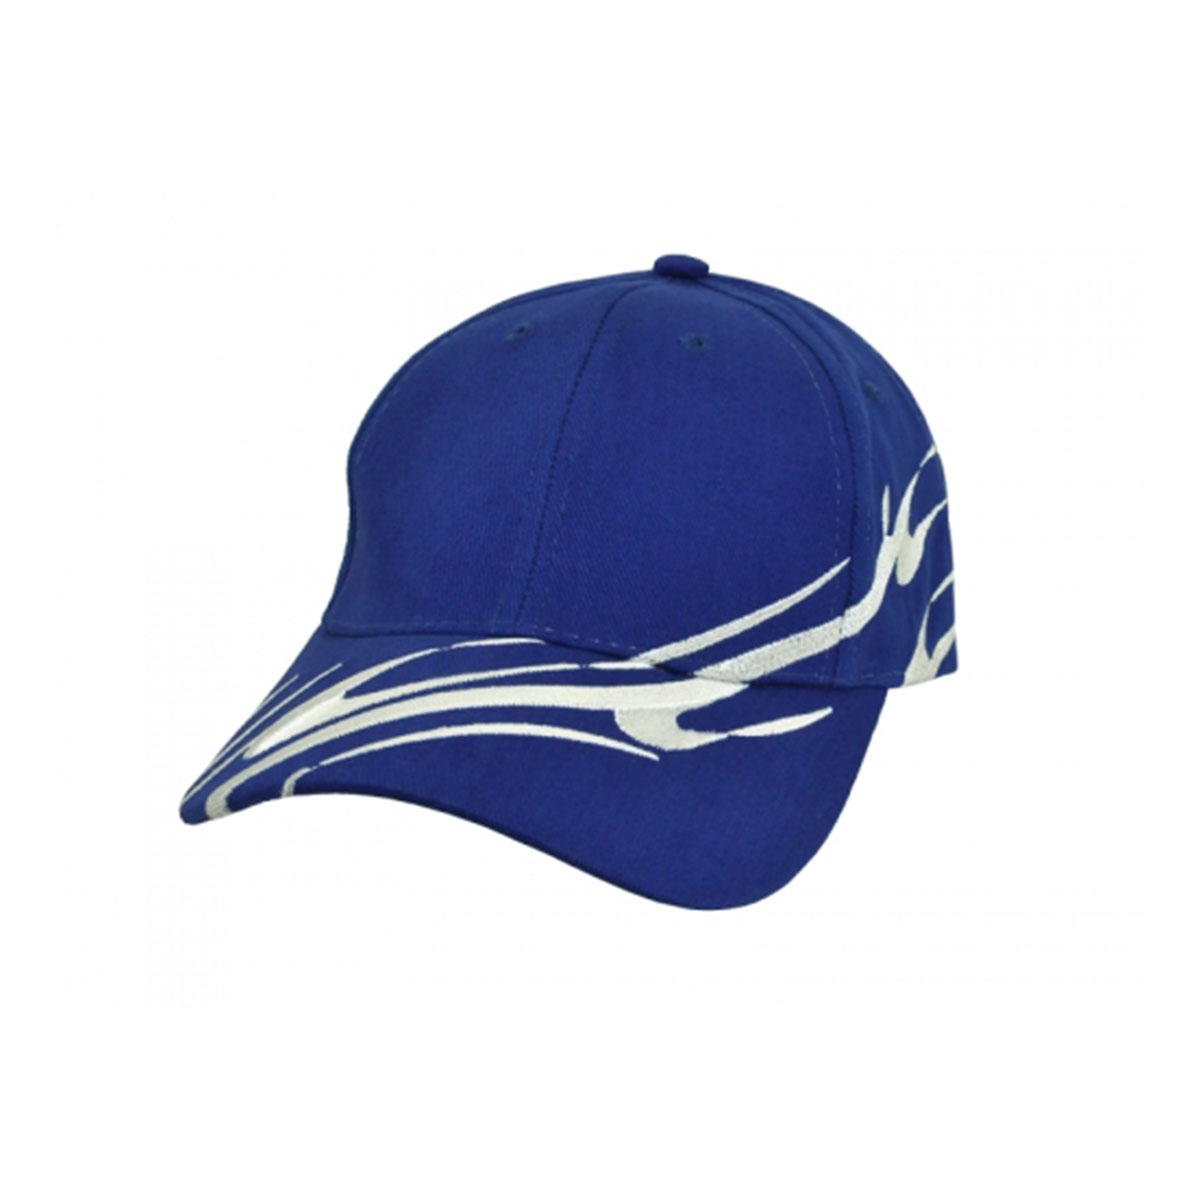 Wave Cap-Royal / White